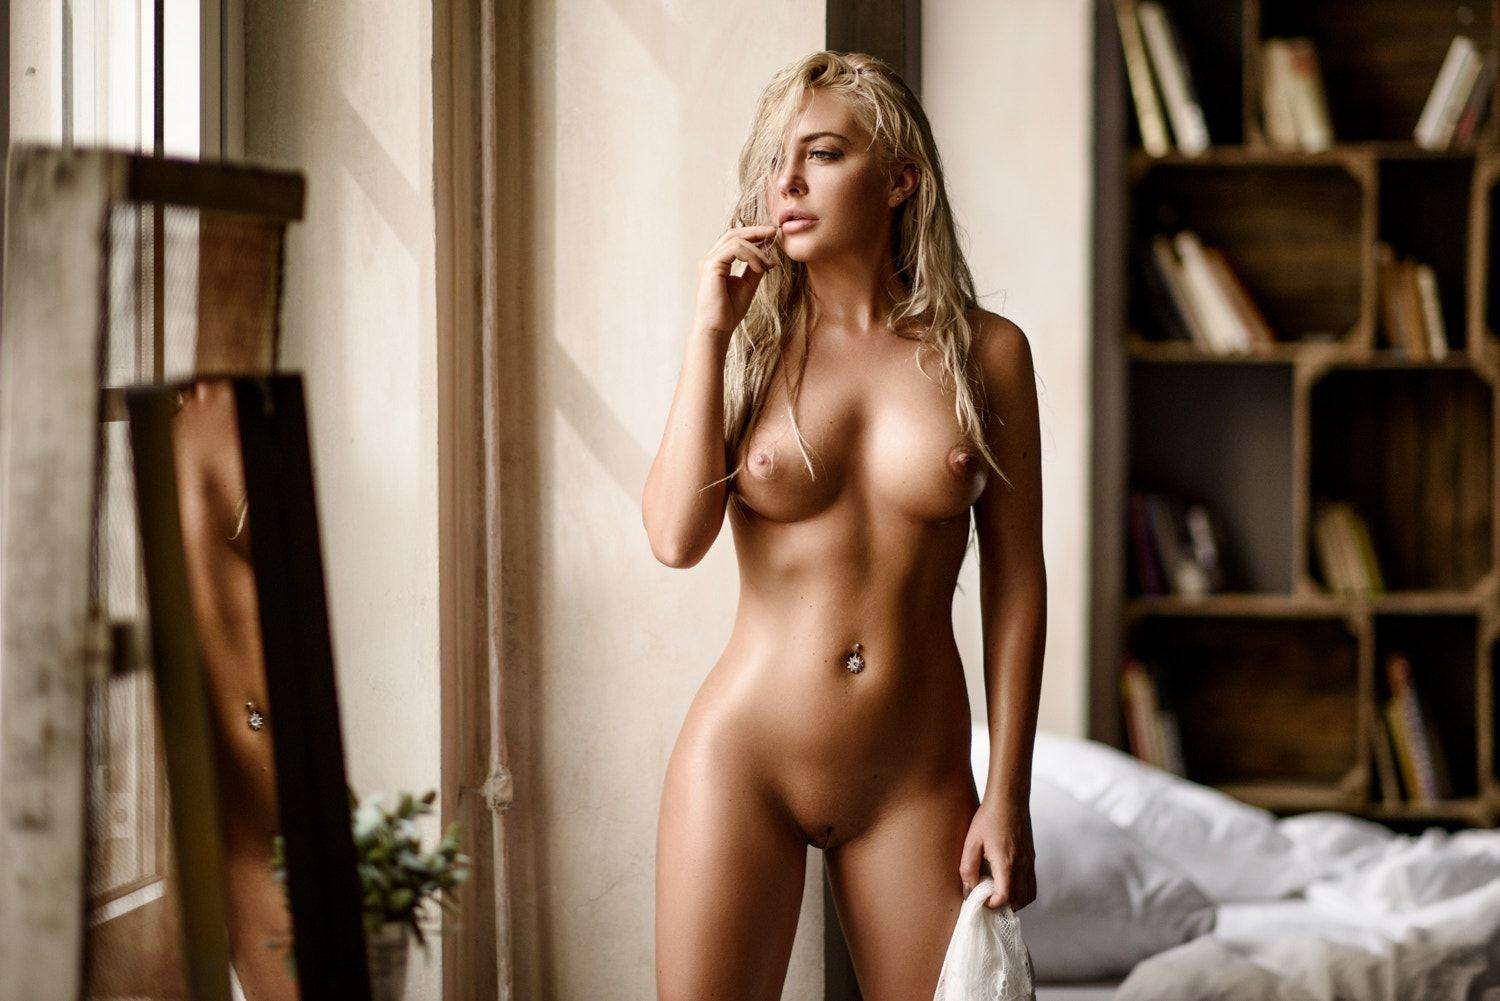 Gipsy girl gipsy girl with small tits images porn pics sex